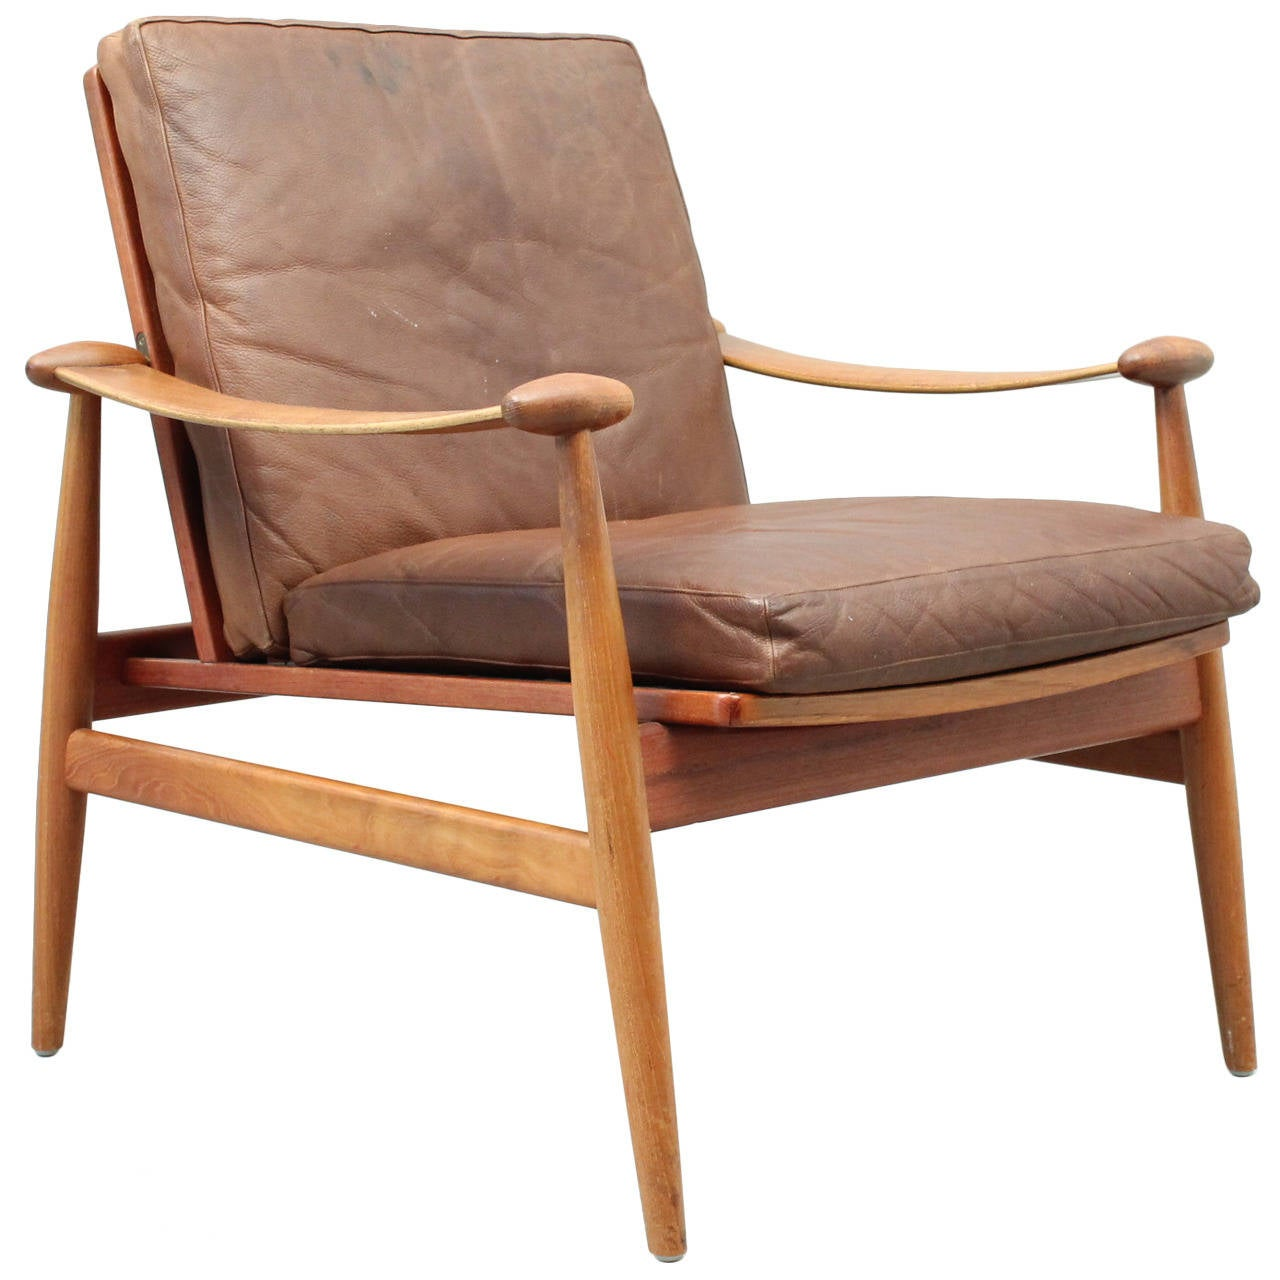 Finn Juhl Spade Chair Fd133 With Brown Leather Danish